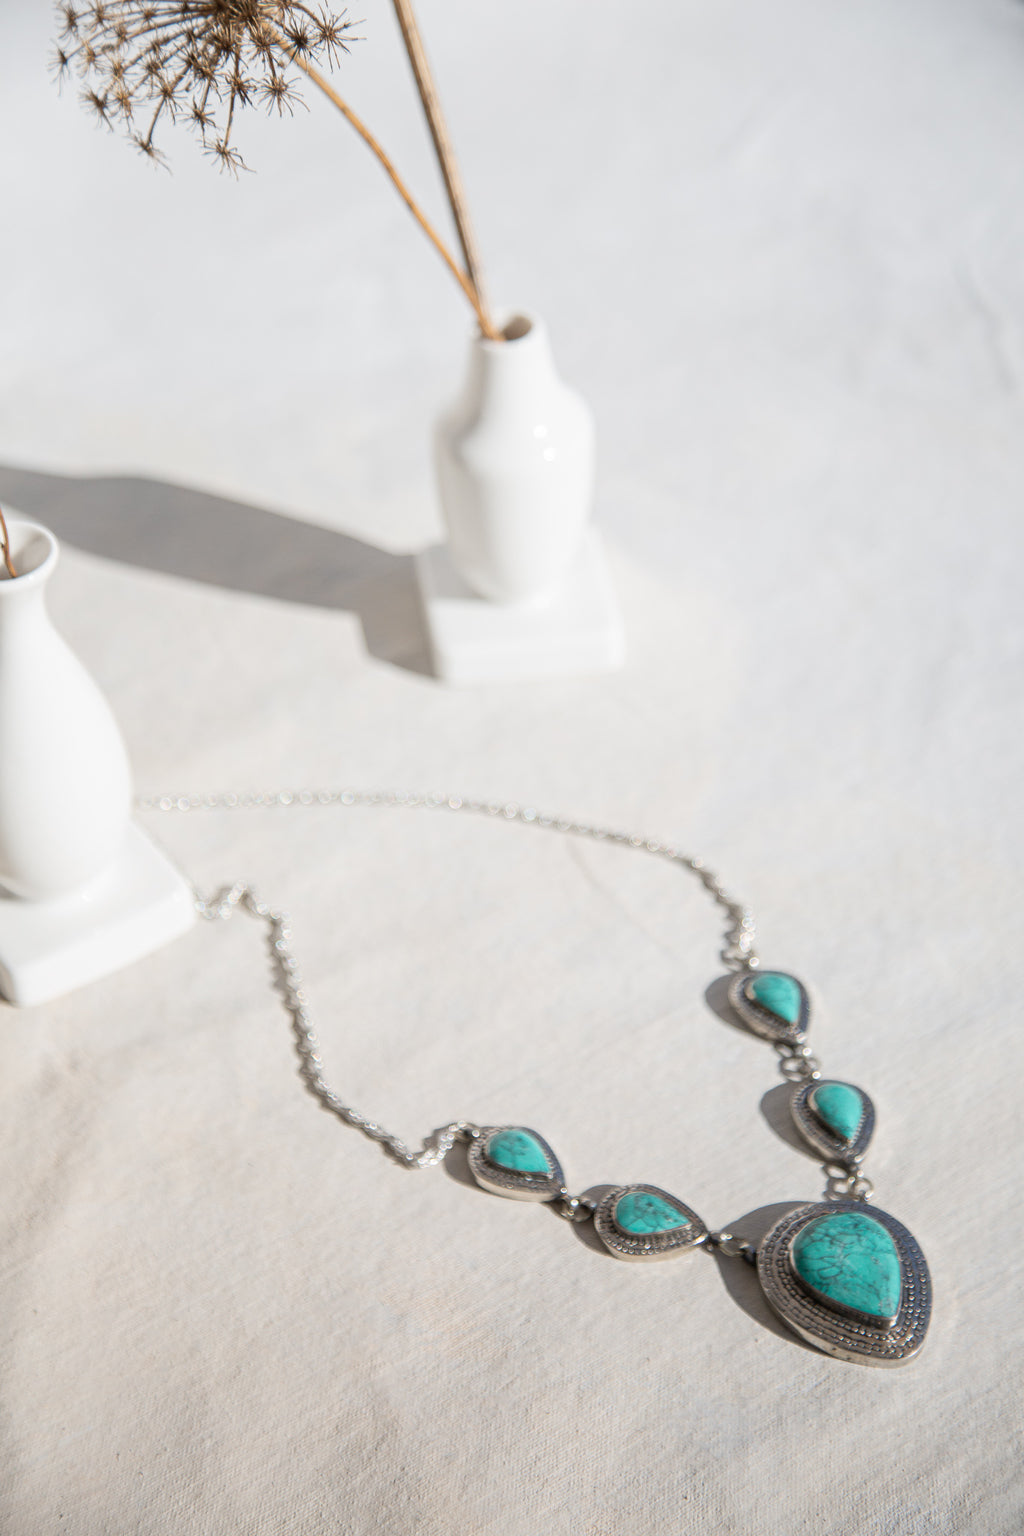 Turquesa - necklace with turquoise stones